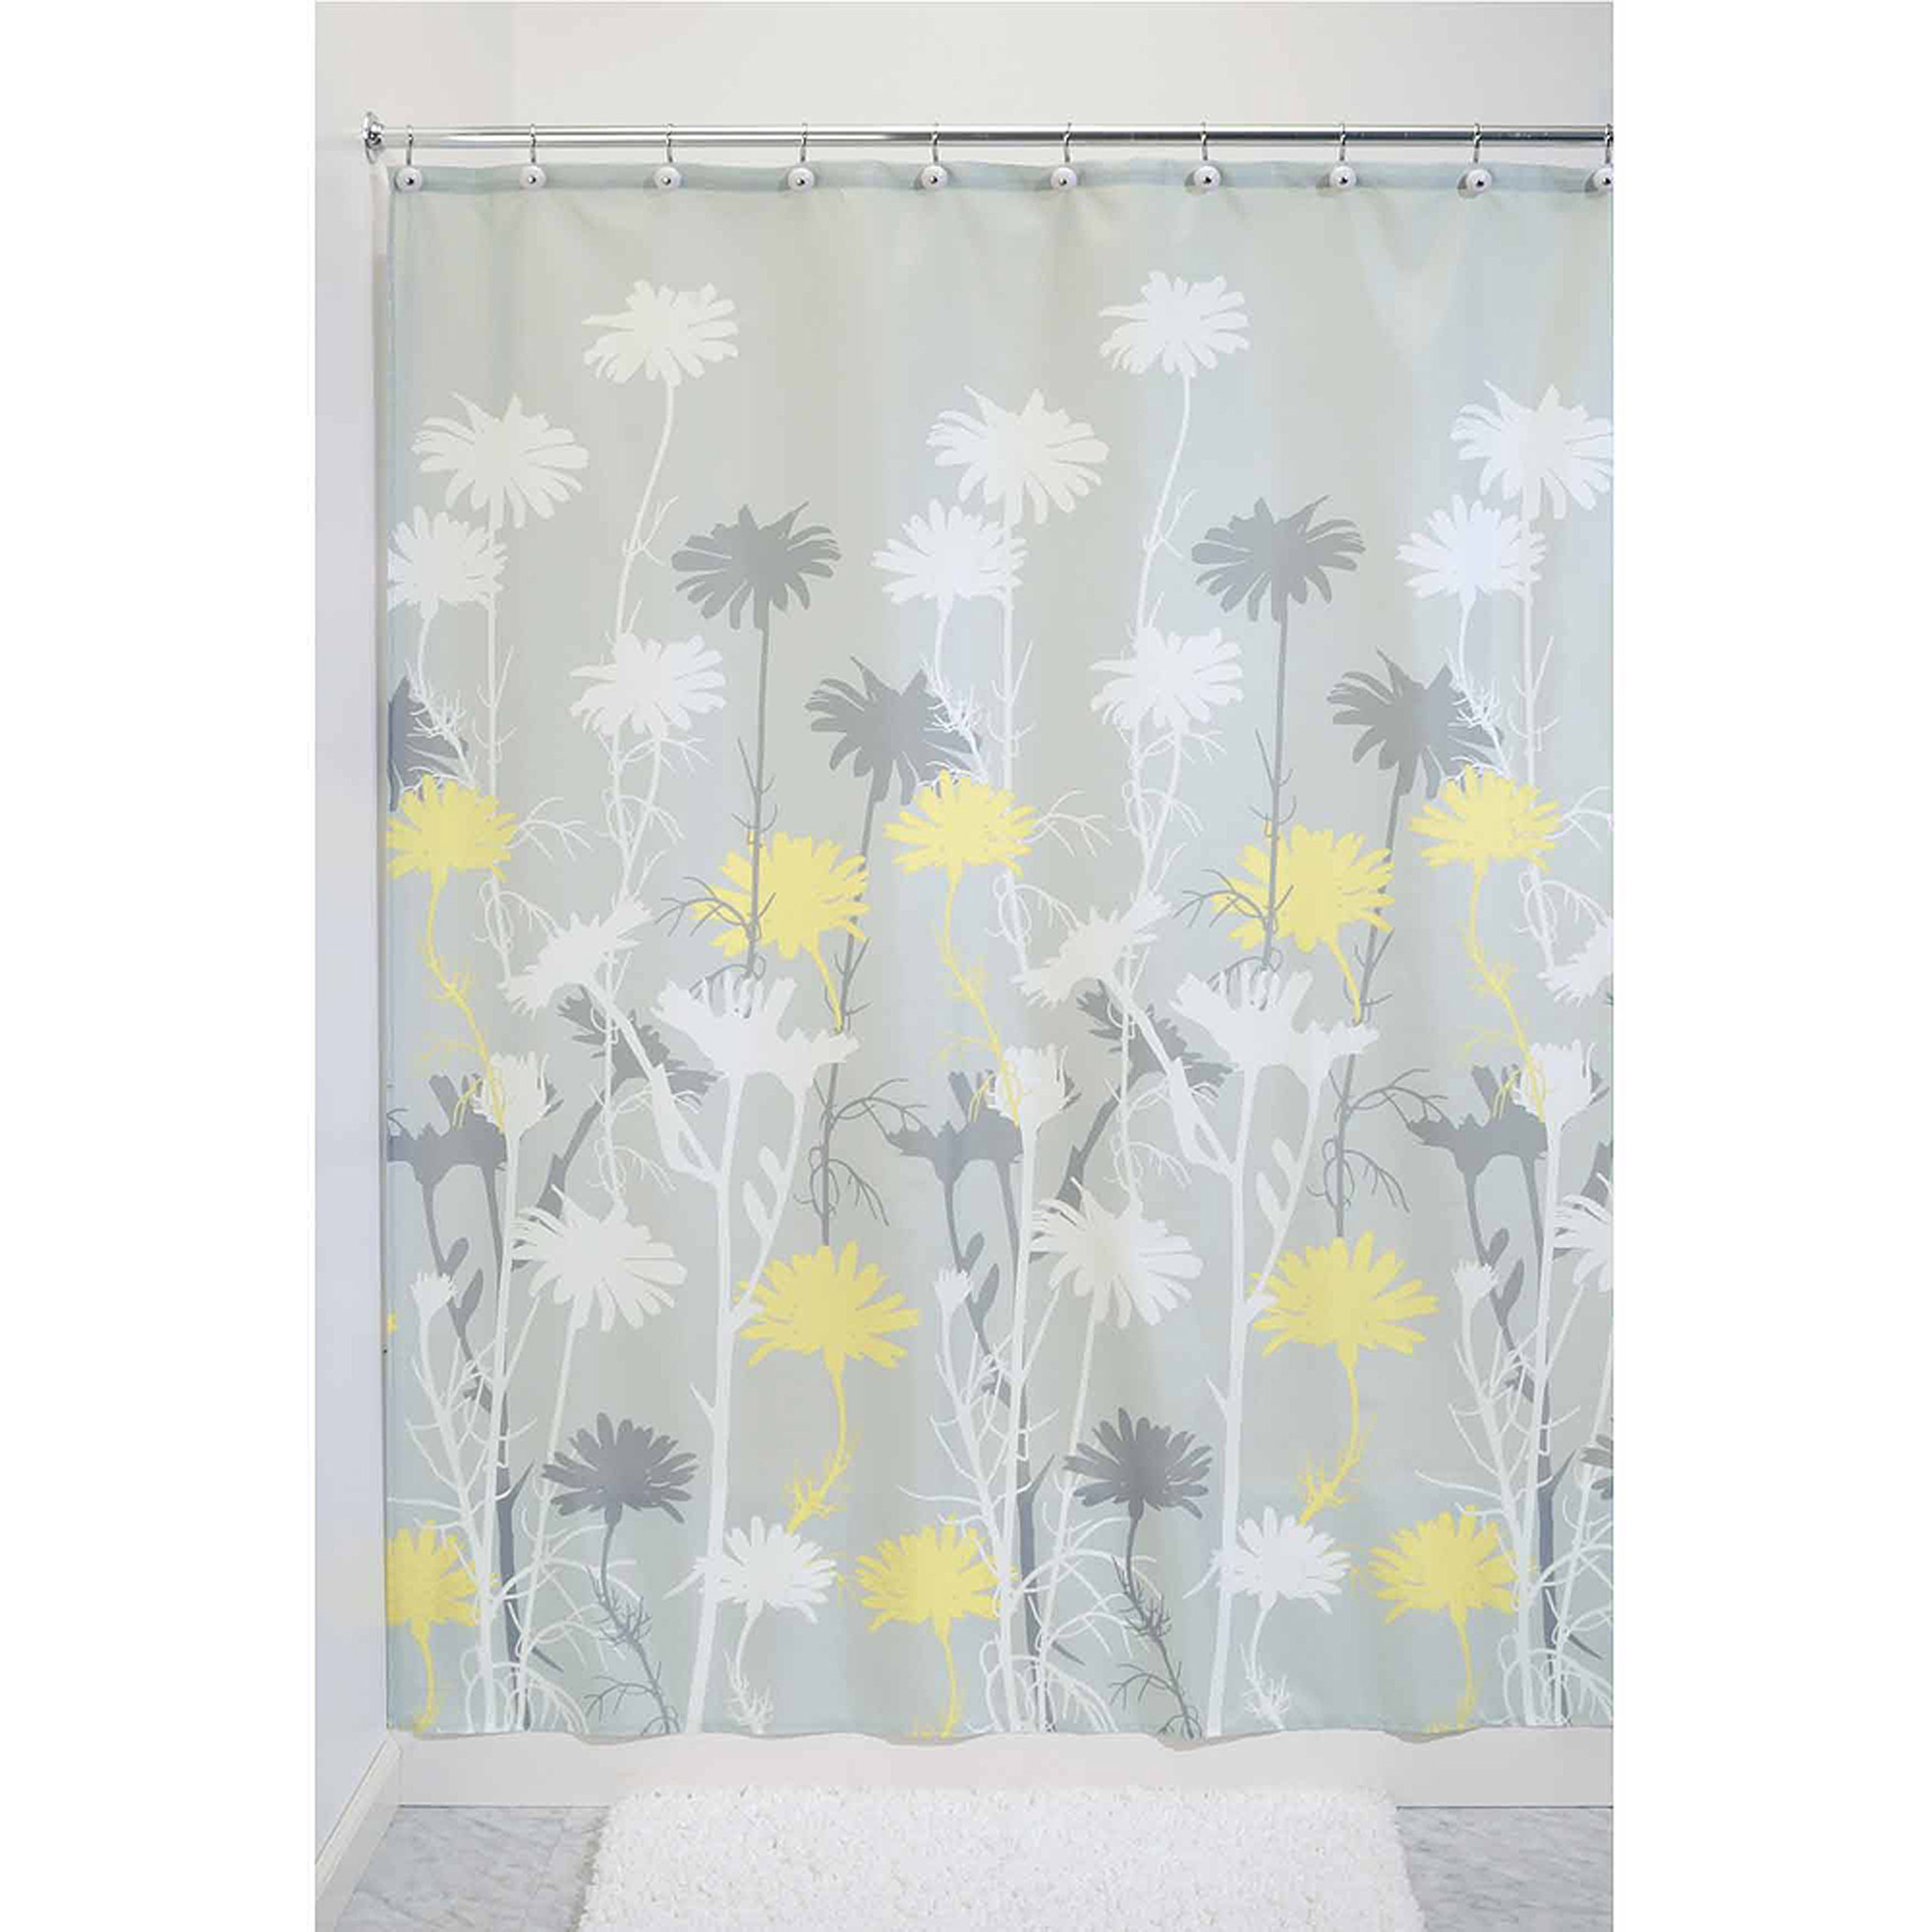 Beautiful Bathroom Decor Ideas with Floral Shower Curtain: Floral Shower Curtain | Daisy Shower Curtains | Shower Curtains Floral Print